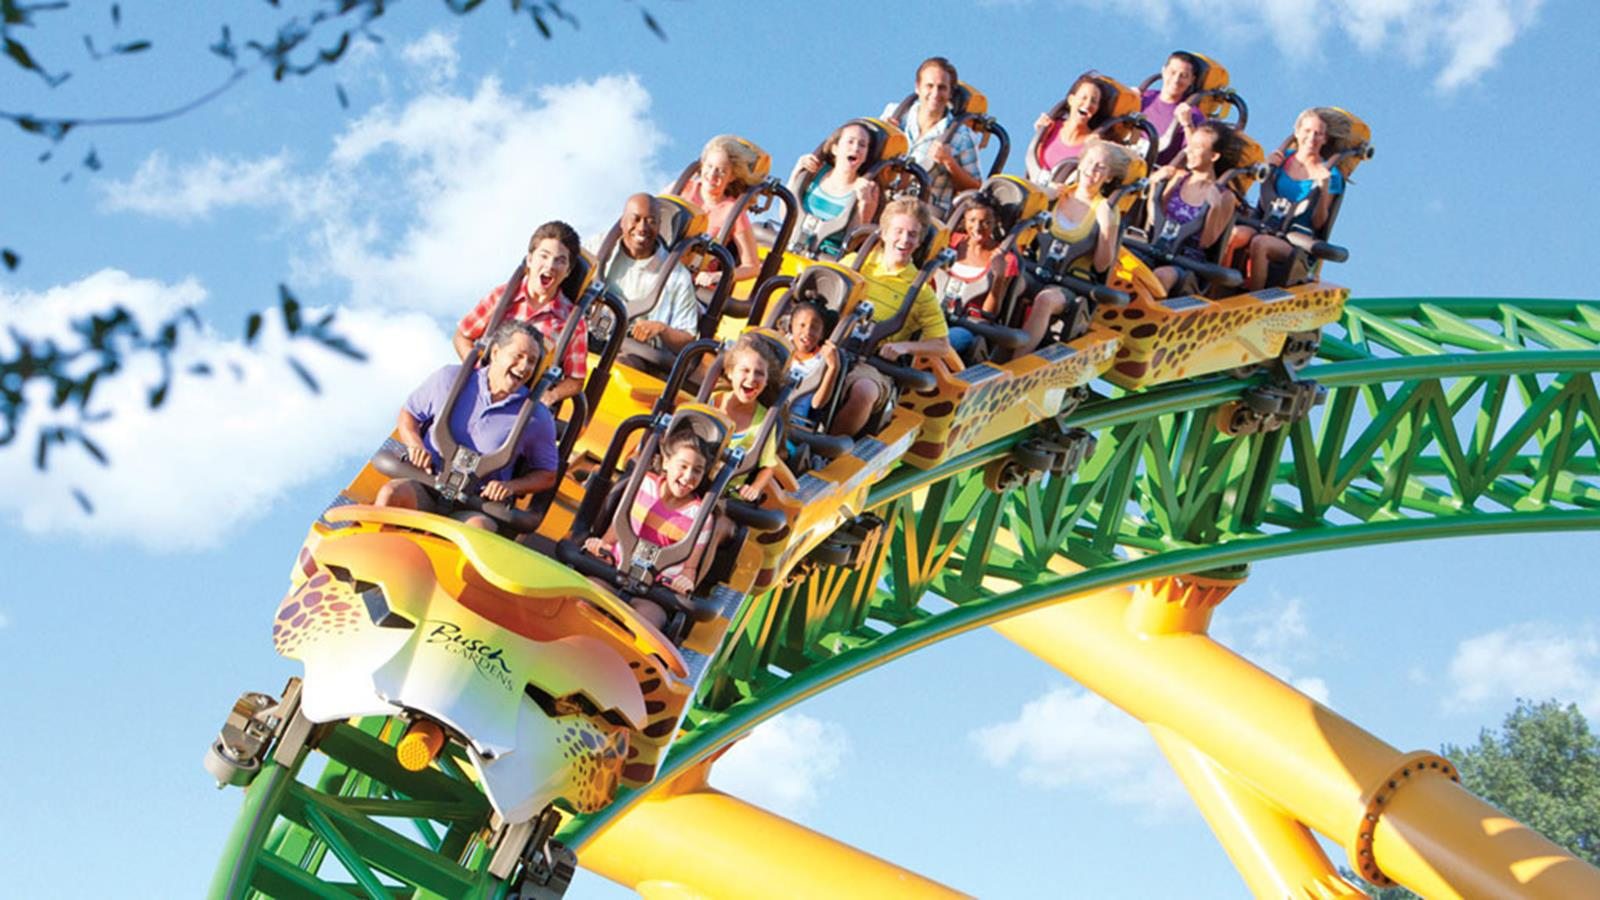 10 top mid atlantic amusement parks and water parks for Busch gardens tampa water park